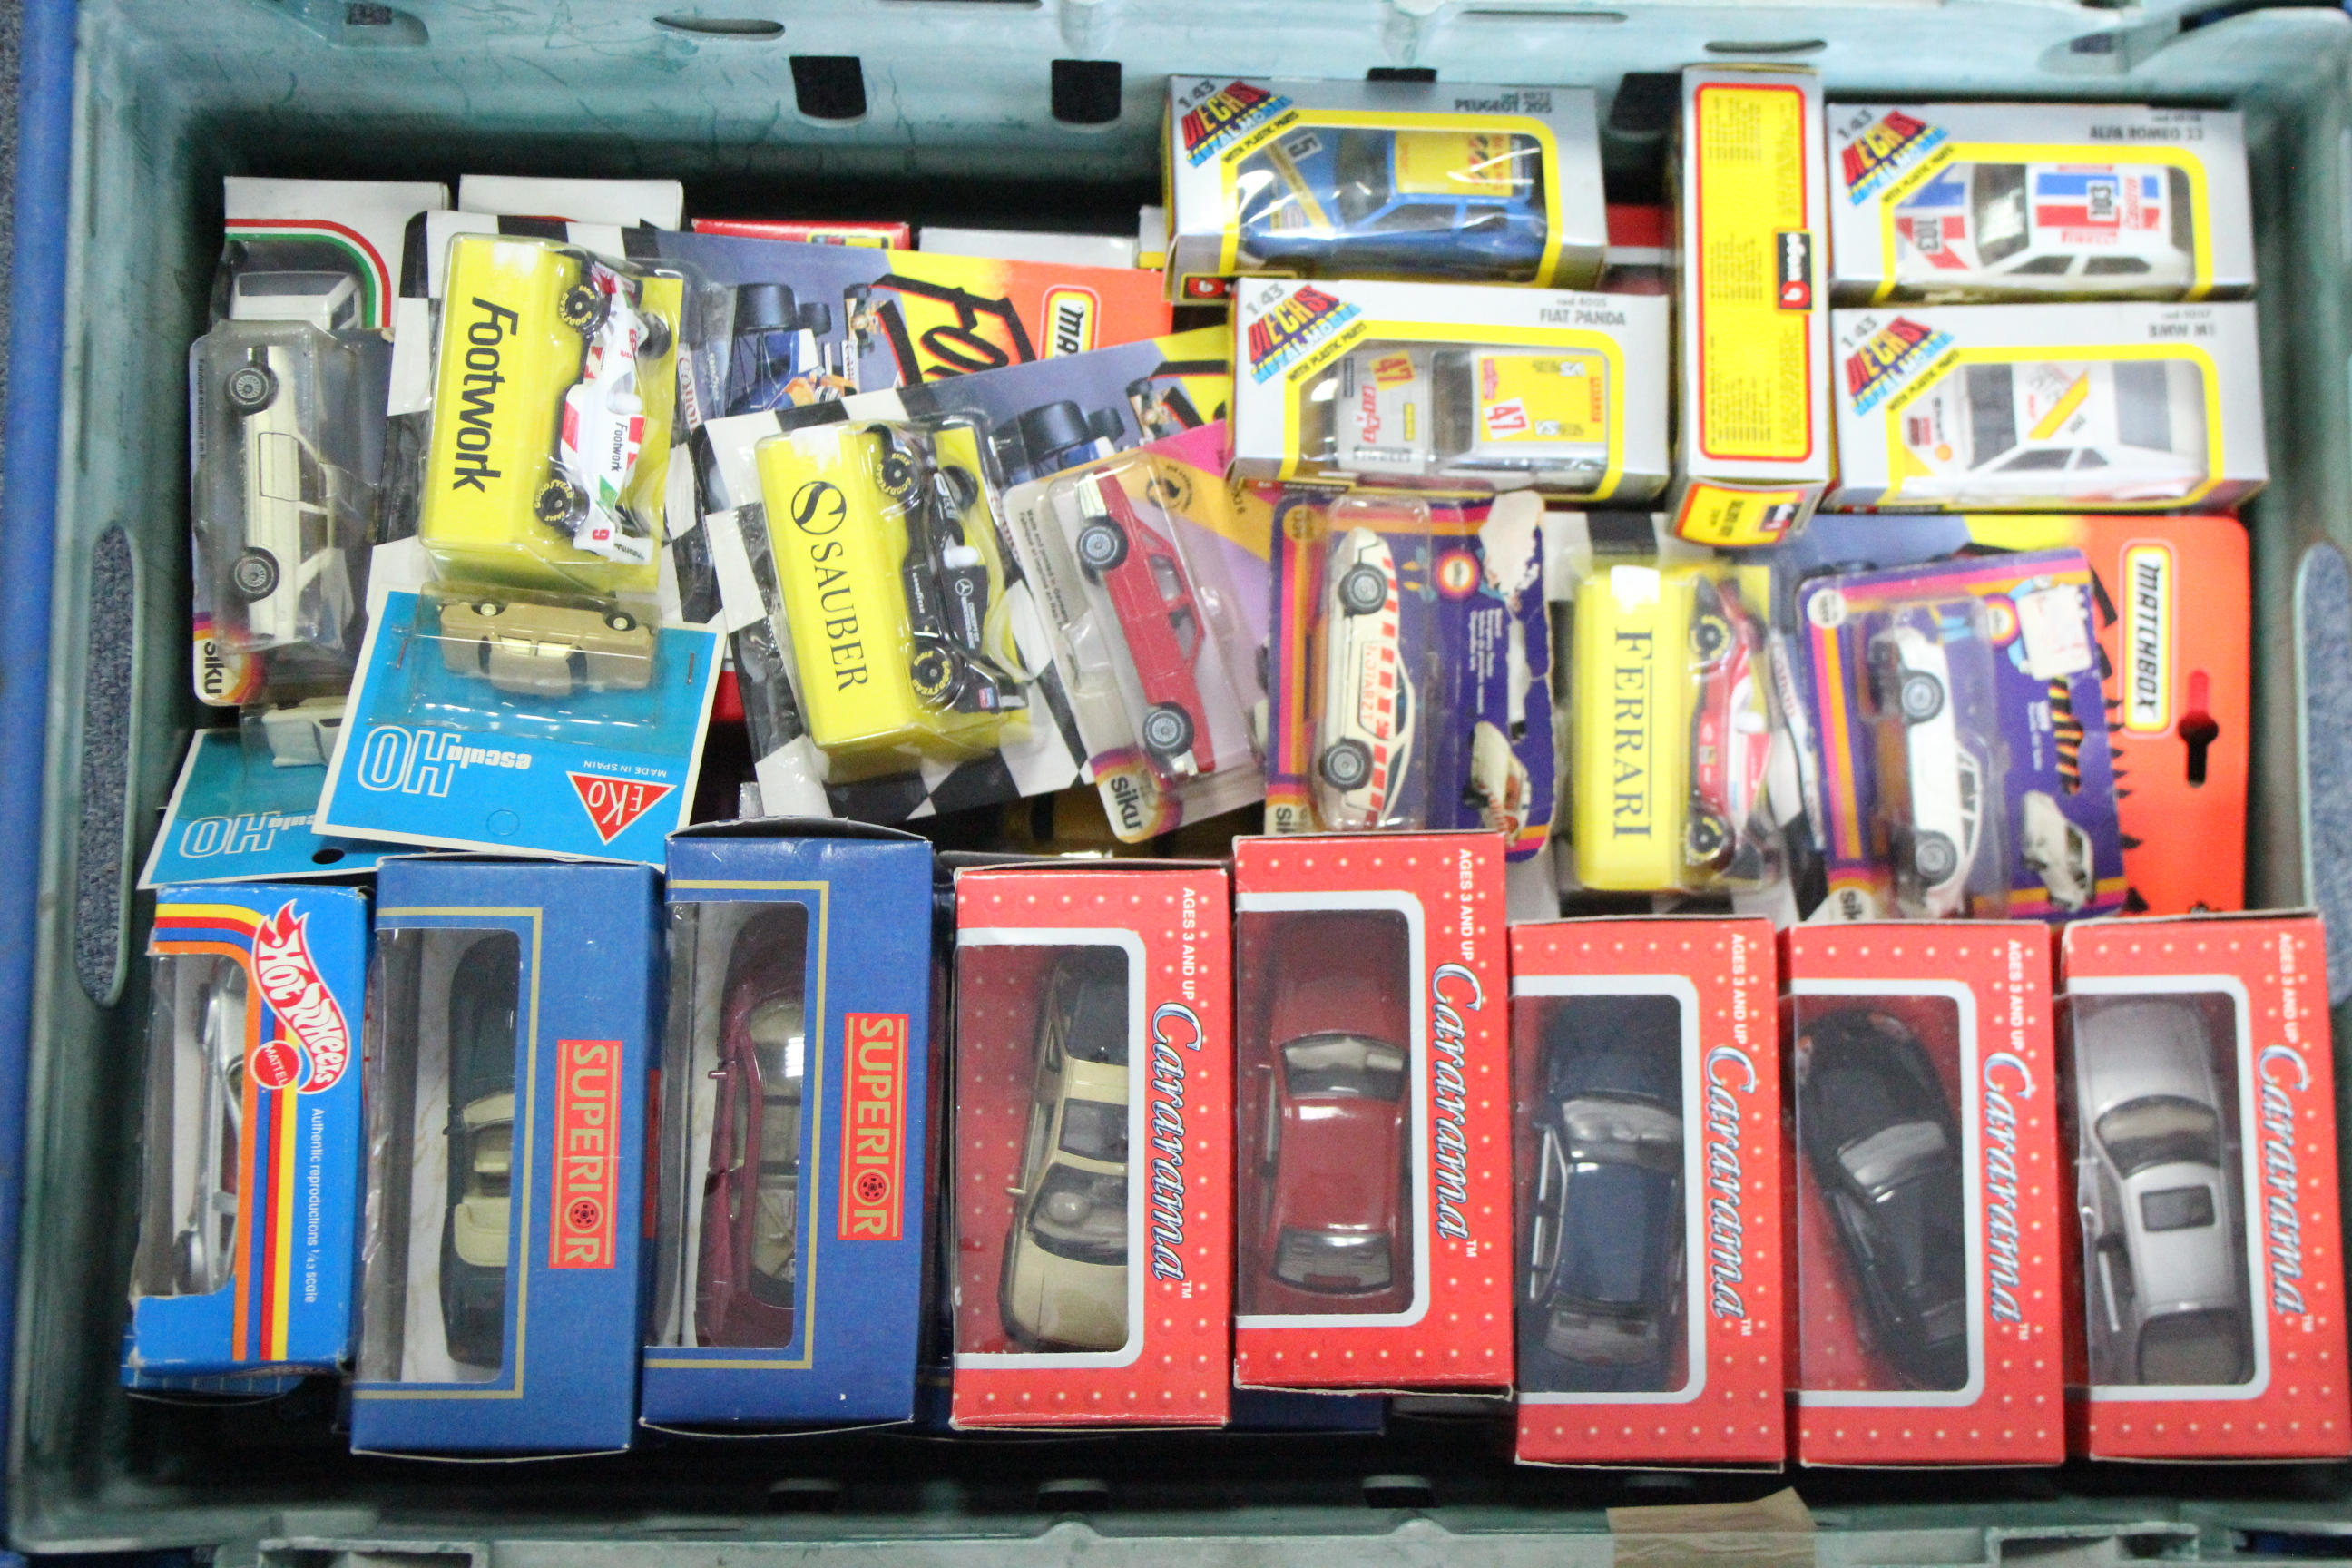 Lot 254 - Forty-five various scale models by Corgi, Burago, etc., all boxed.